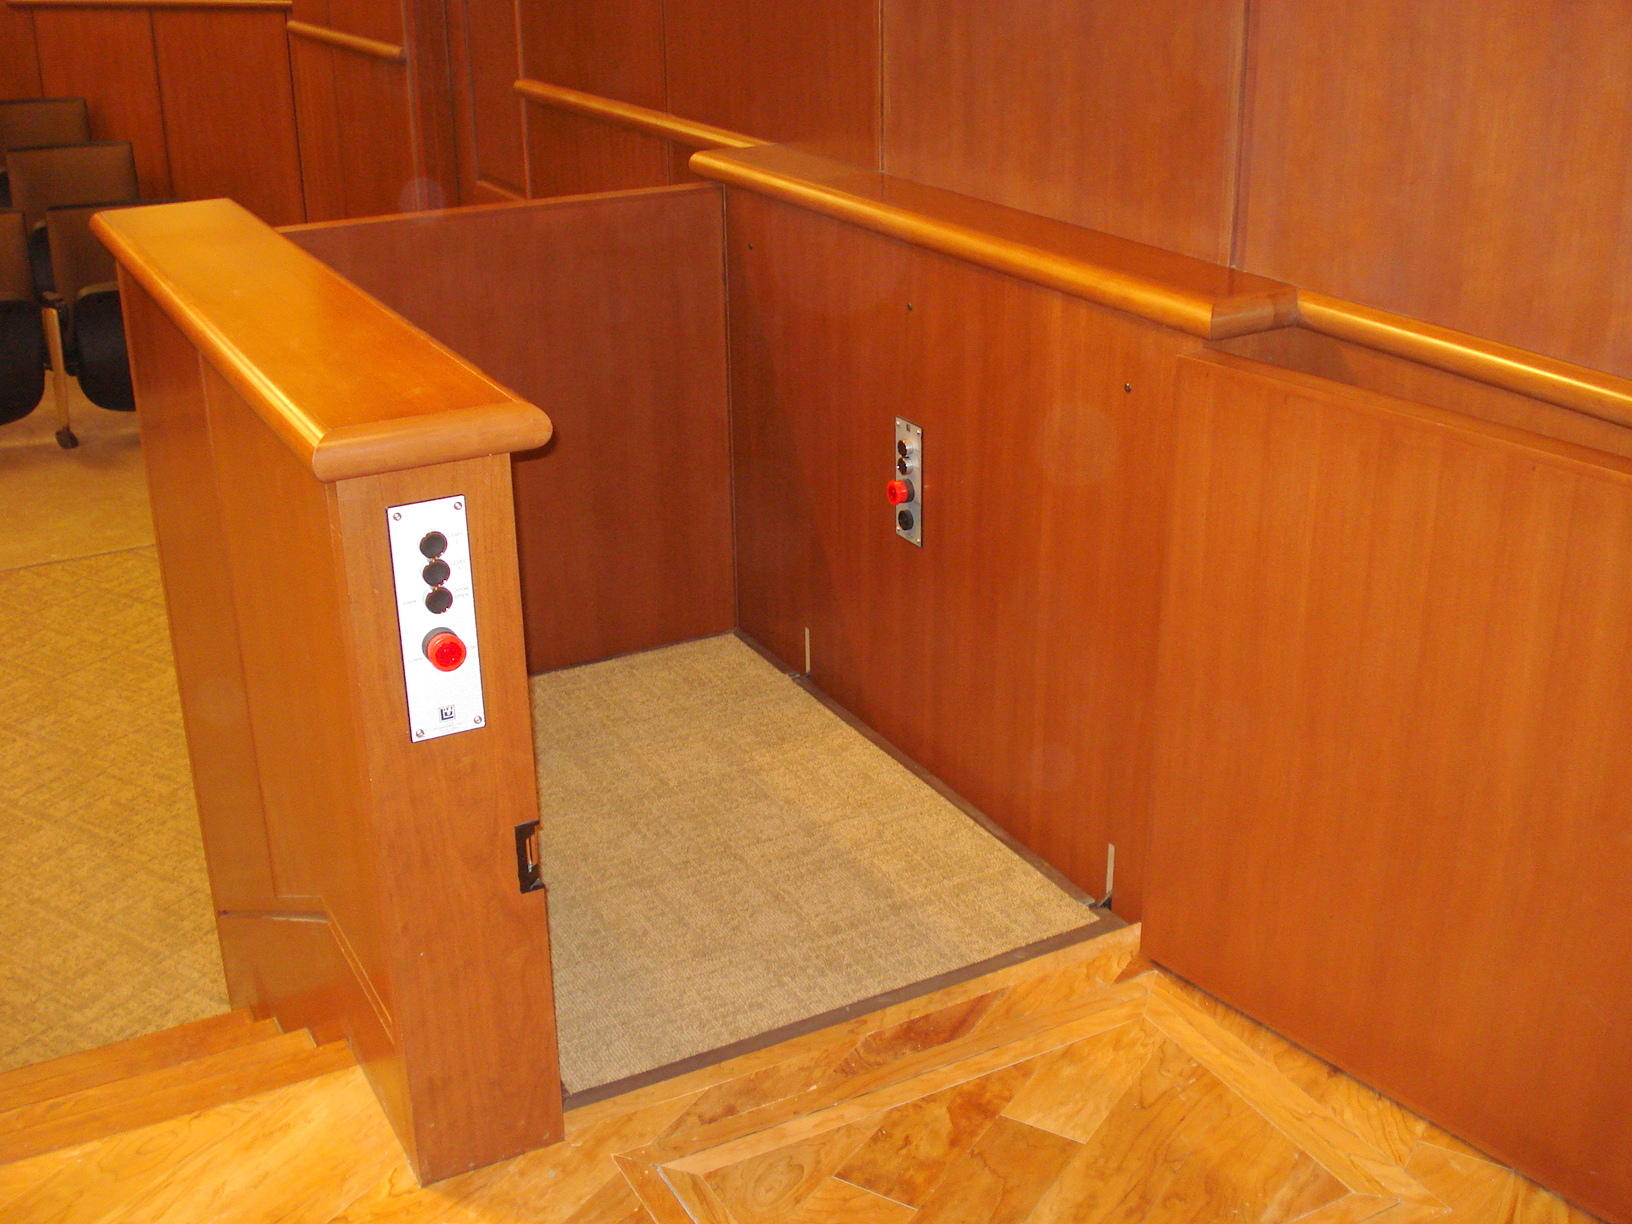 Lift door at upper level is opened. Lift in auditorium provides access to and from the stage. Lift is positioned next to stairs and is encased in wood millwork blending in with surrounding aesthetics. Lift function readily available, independently operable.